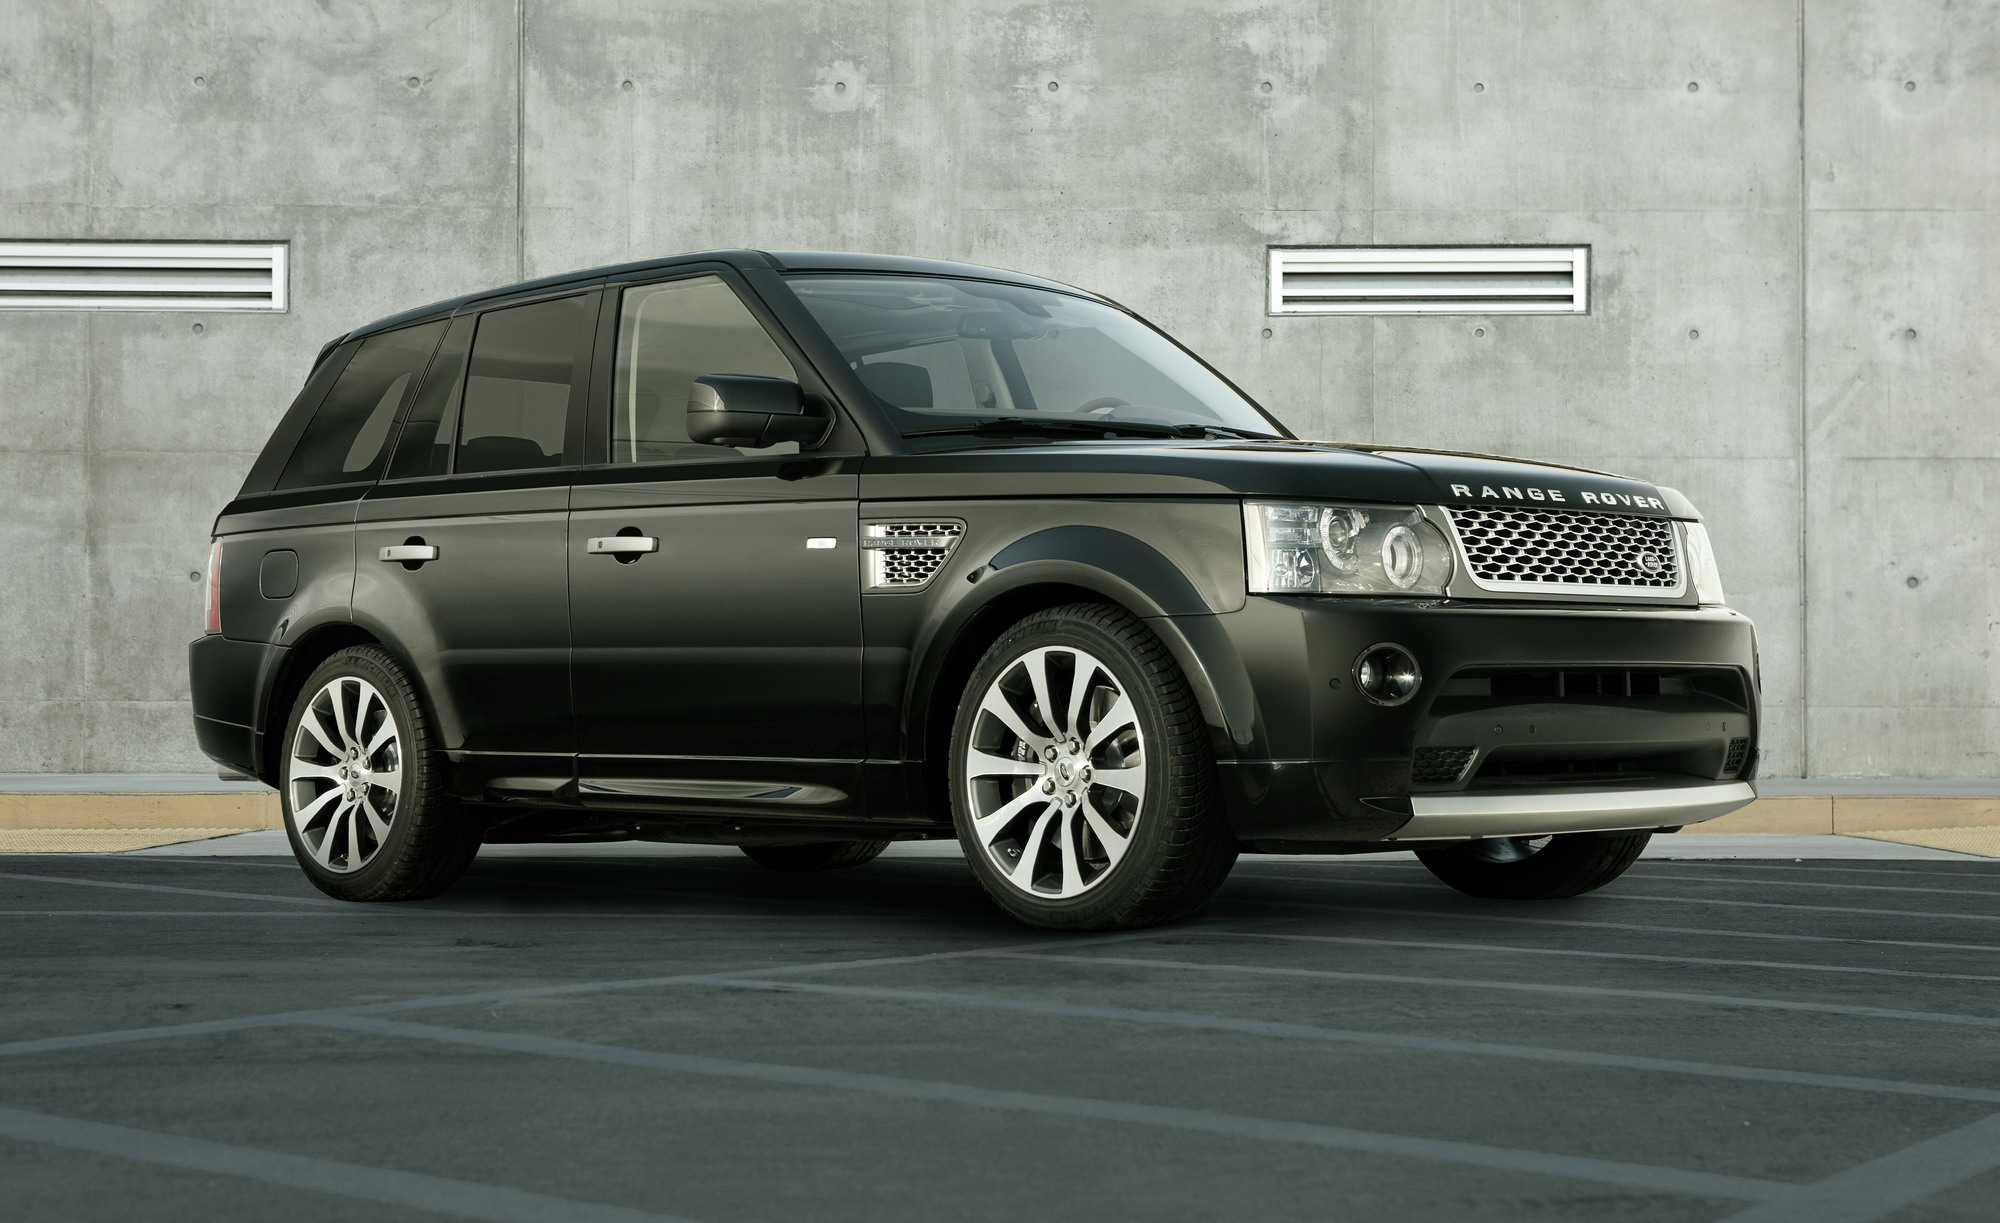 Land Rover Range Sport Reviews Specs Prices Photos And 2007 Supercharged Firing Order With Diagrams Images 2011 Autobiography Limited Edition